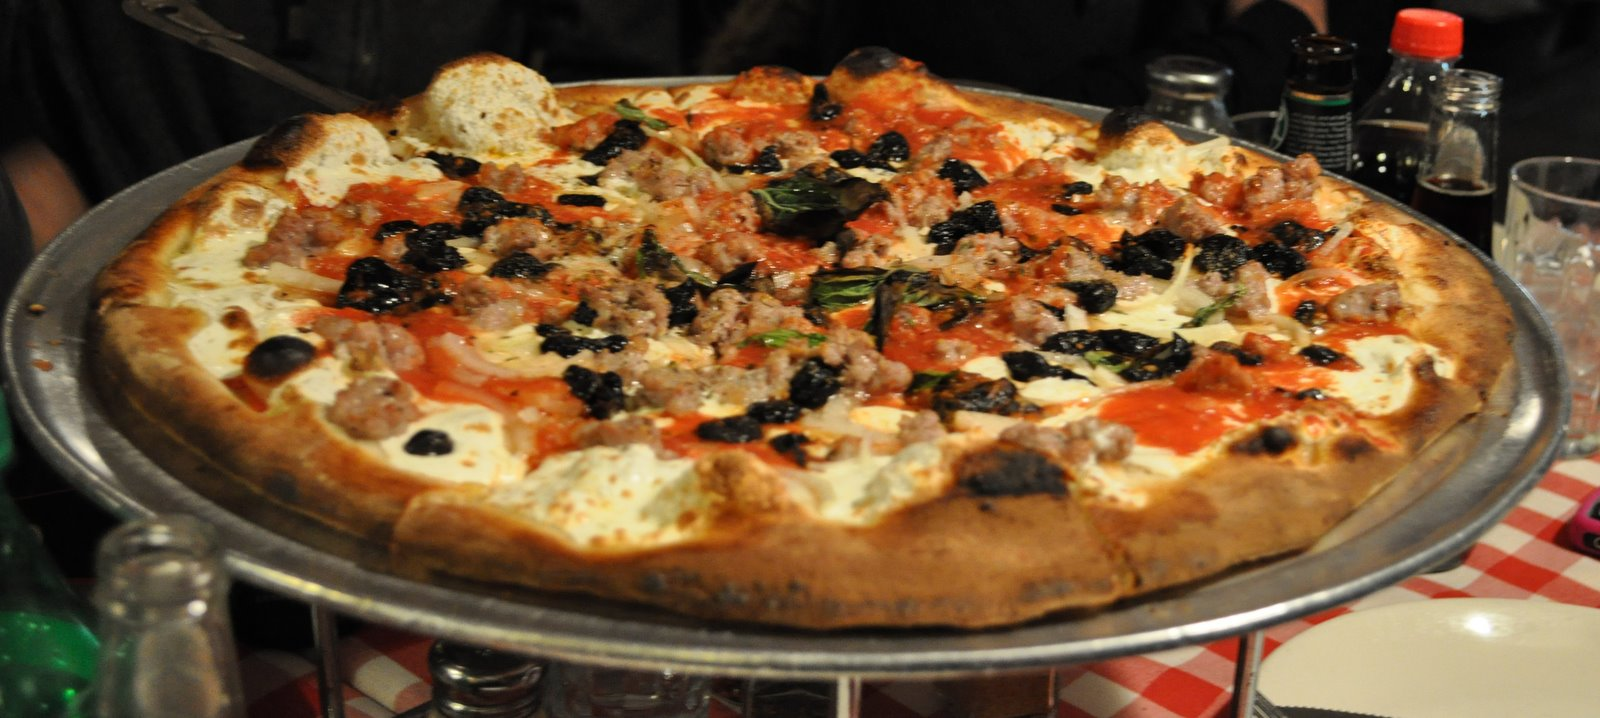 Grimaldis Garden City Grimaldis Garden City Grimaldi Pizza Houston 39 S Pizza Grimaldi 39 S